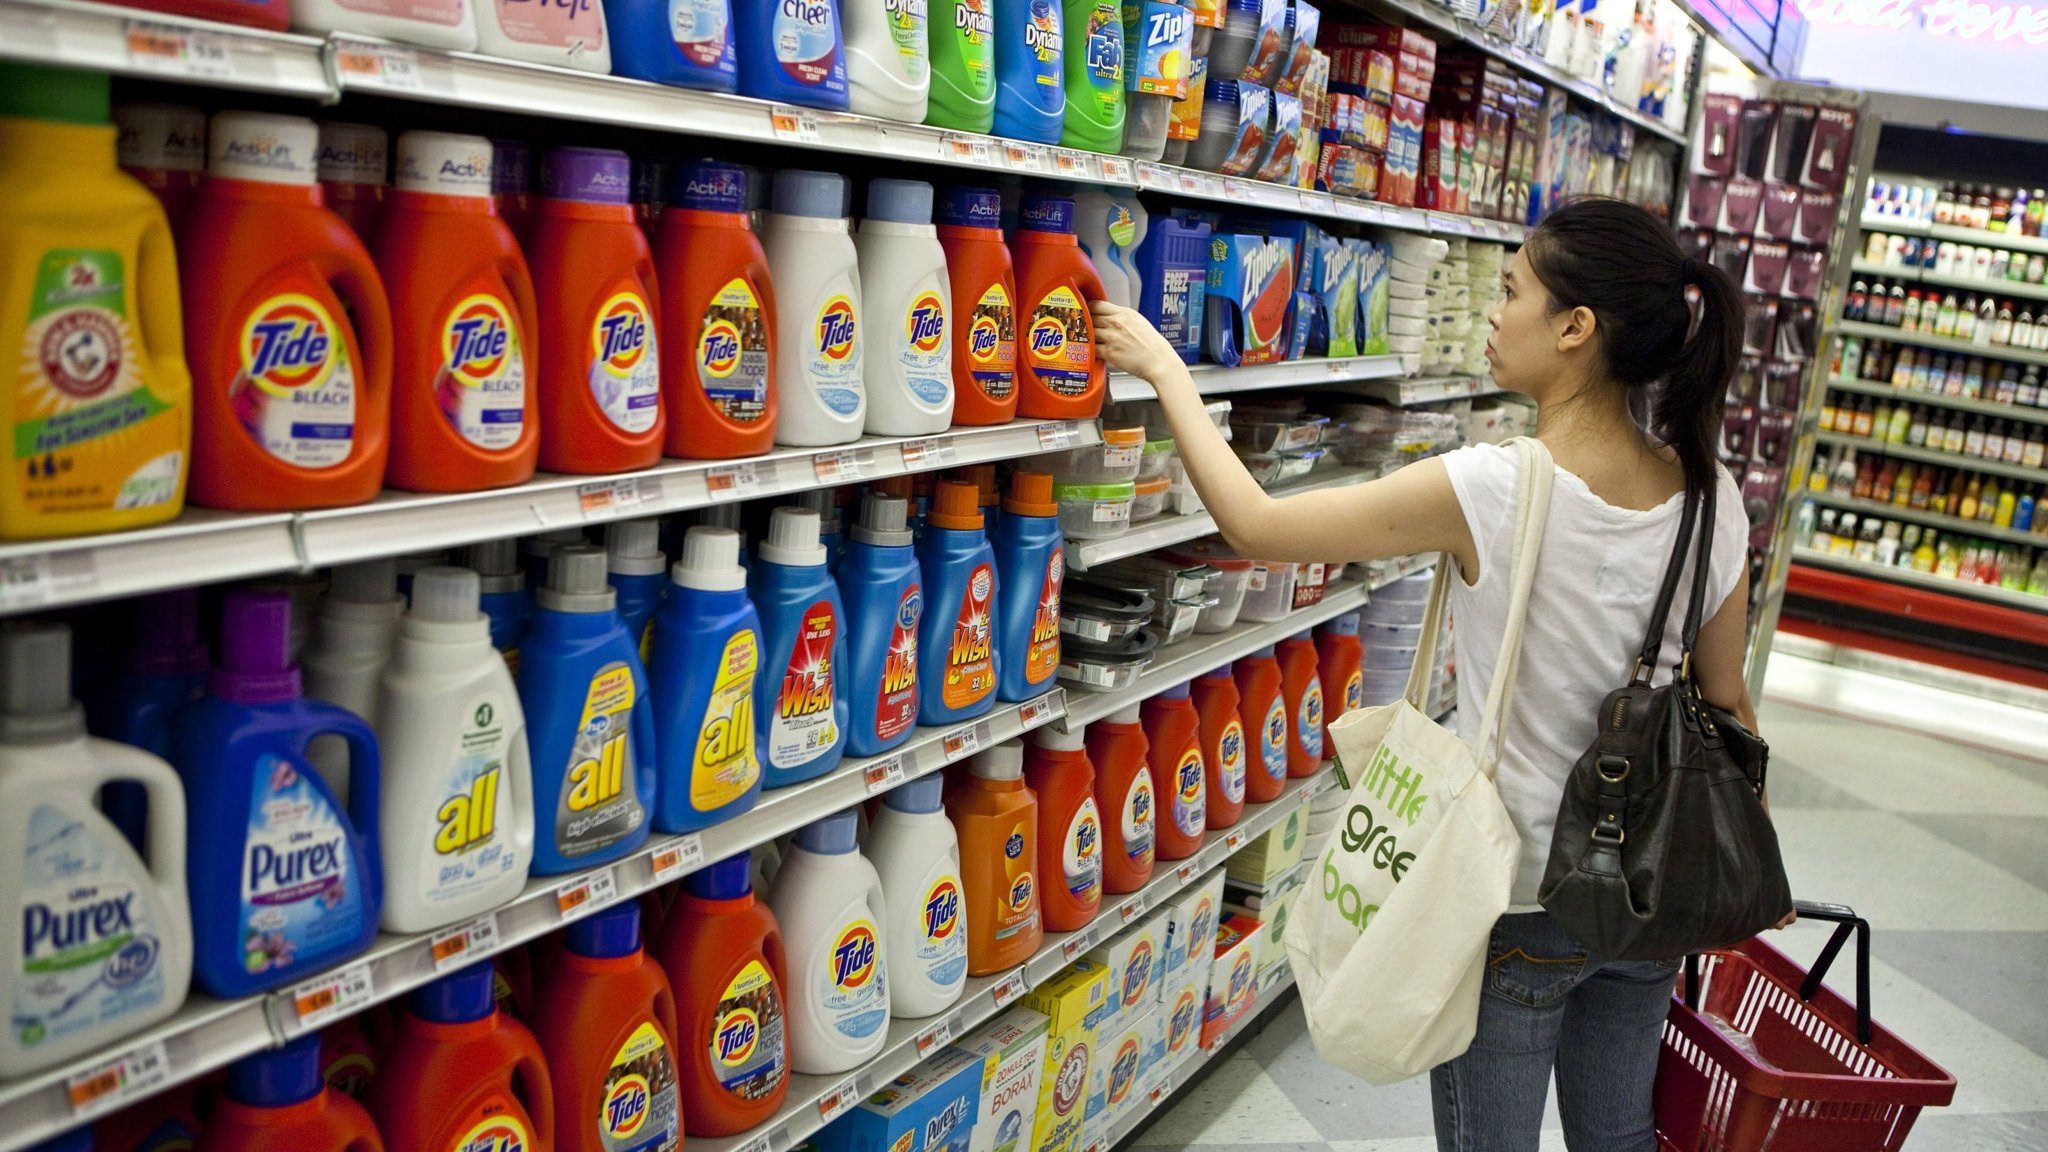 Big brands lose pricing power in battle for consumers